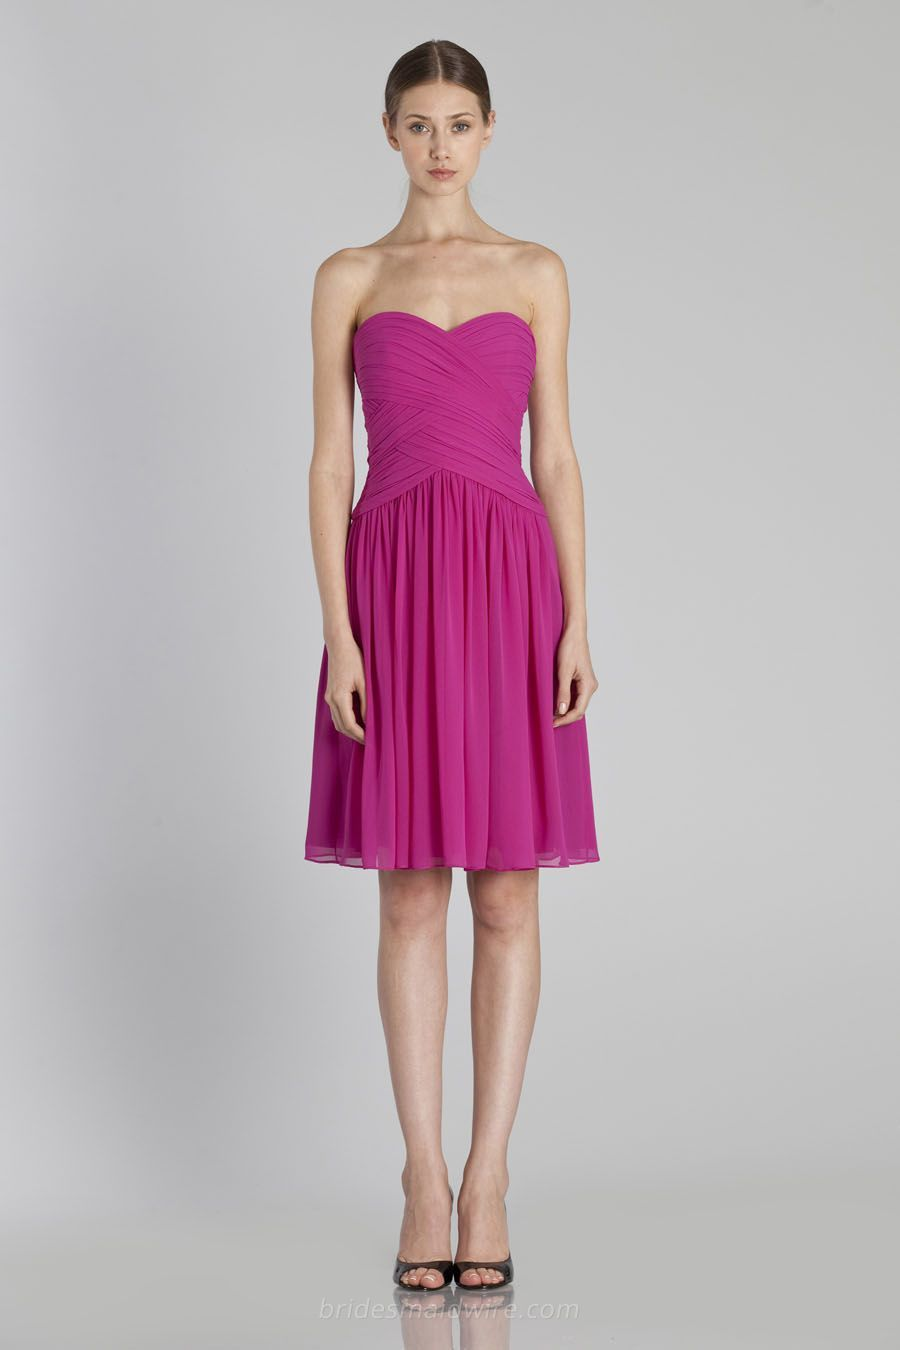 Knee Length A-line Magenta #Strapless Sweetheart #Bridesmaid #Dress ...